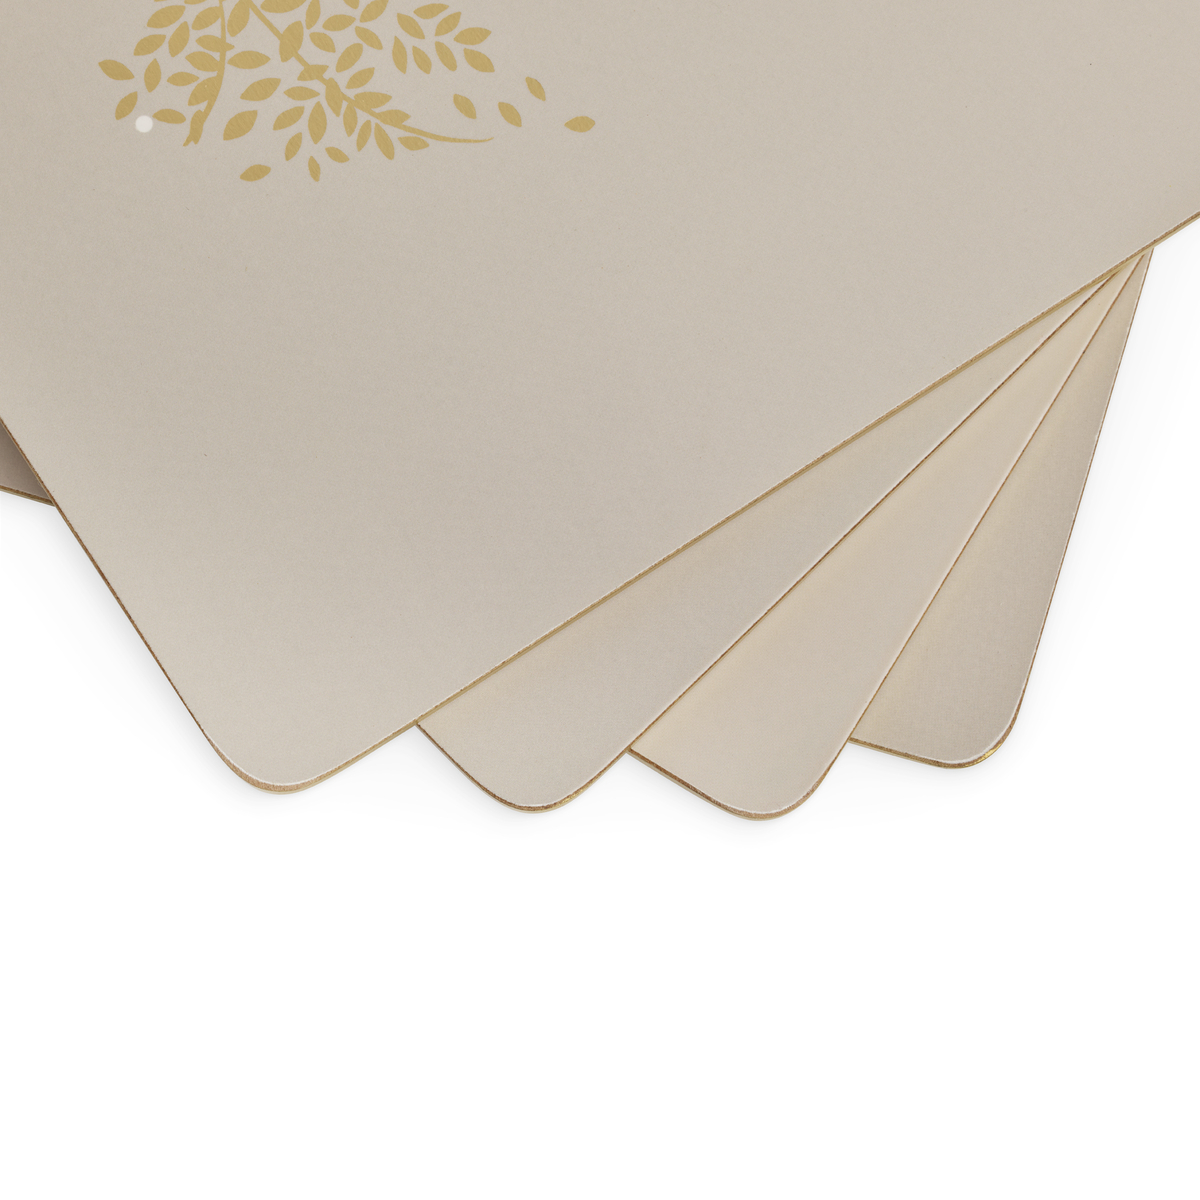 Sara Miller London for Pimpernel Chelsea Placemats Set of 4 Light Grey image number 2